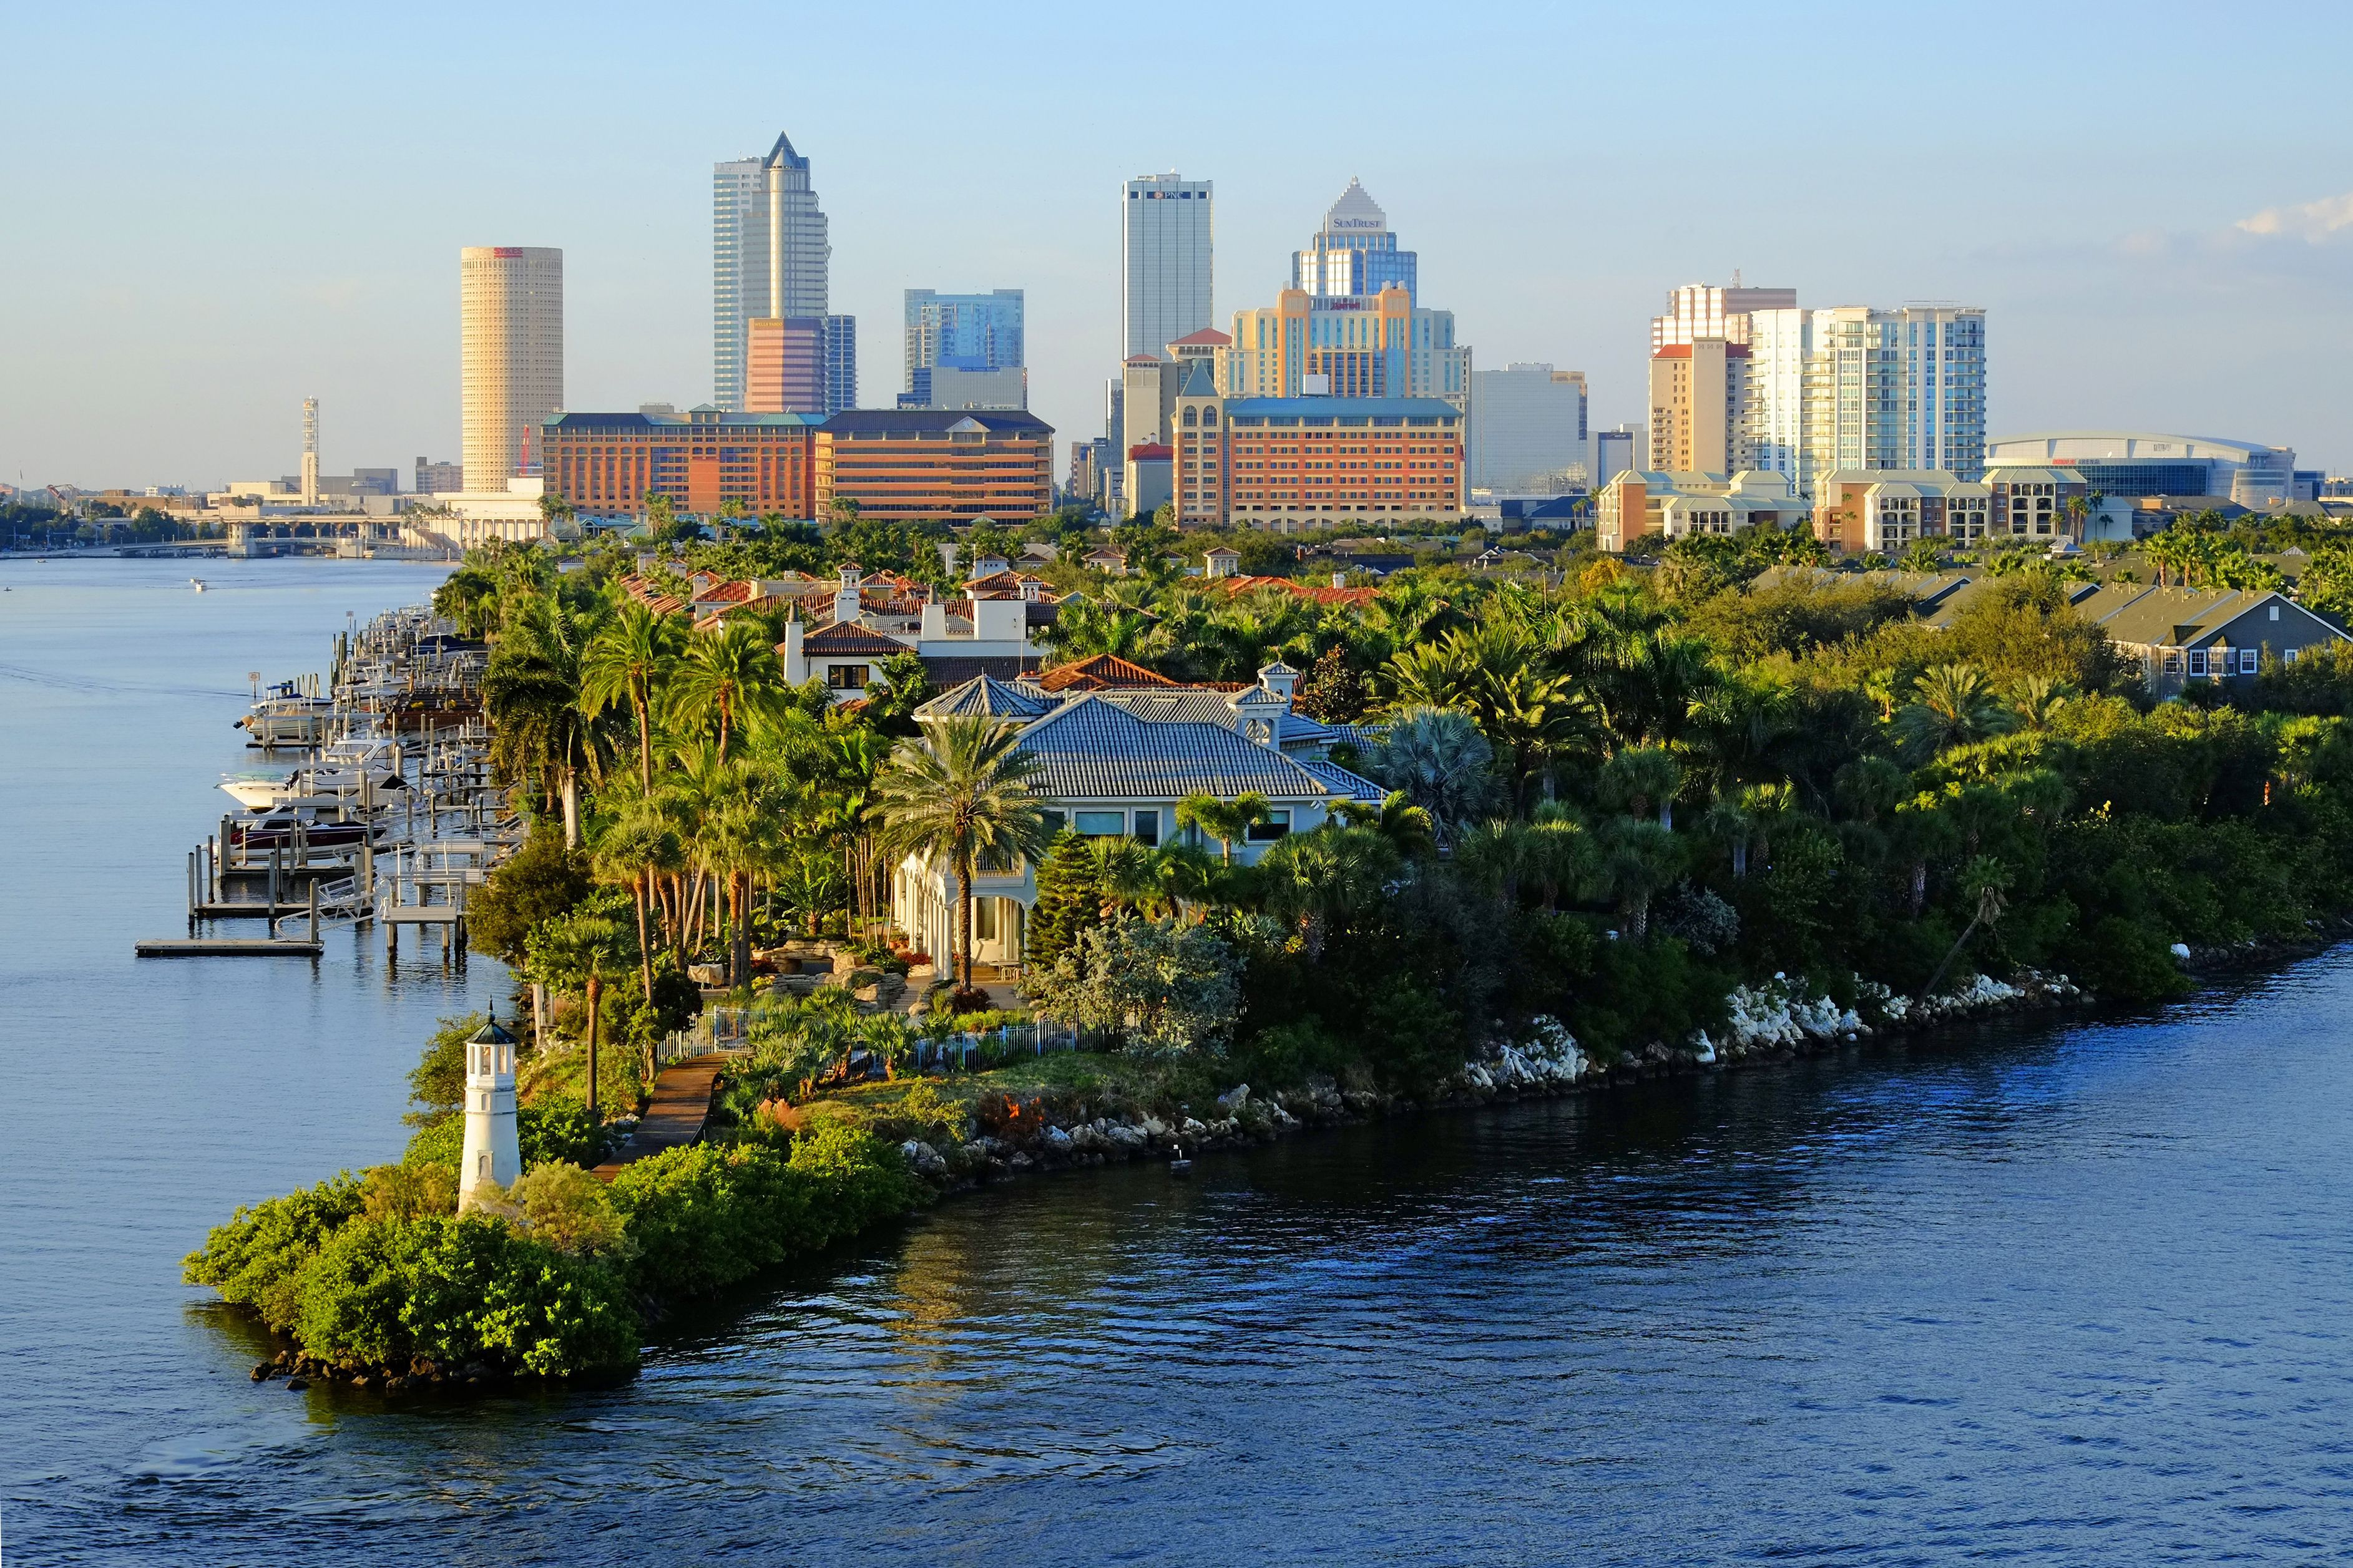 Oldsmar Florida Is Right In The Middle Of The Action Without Being Overbearing If You Are Coming To Town For A V City Vacation Southern Cities Oldsmar Florida